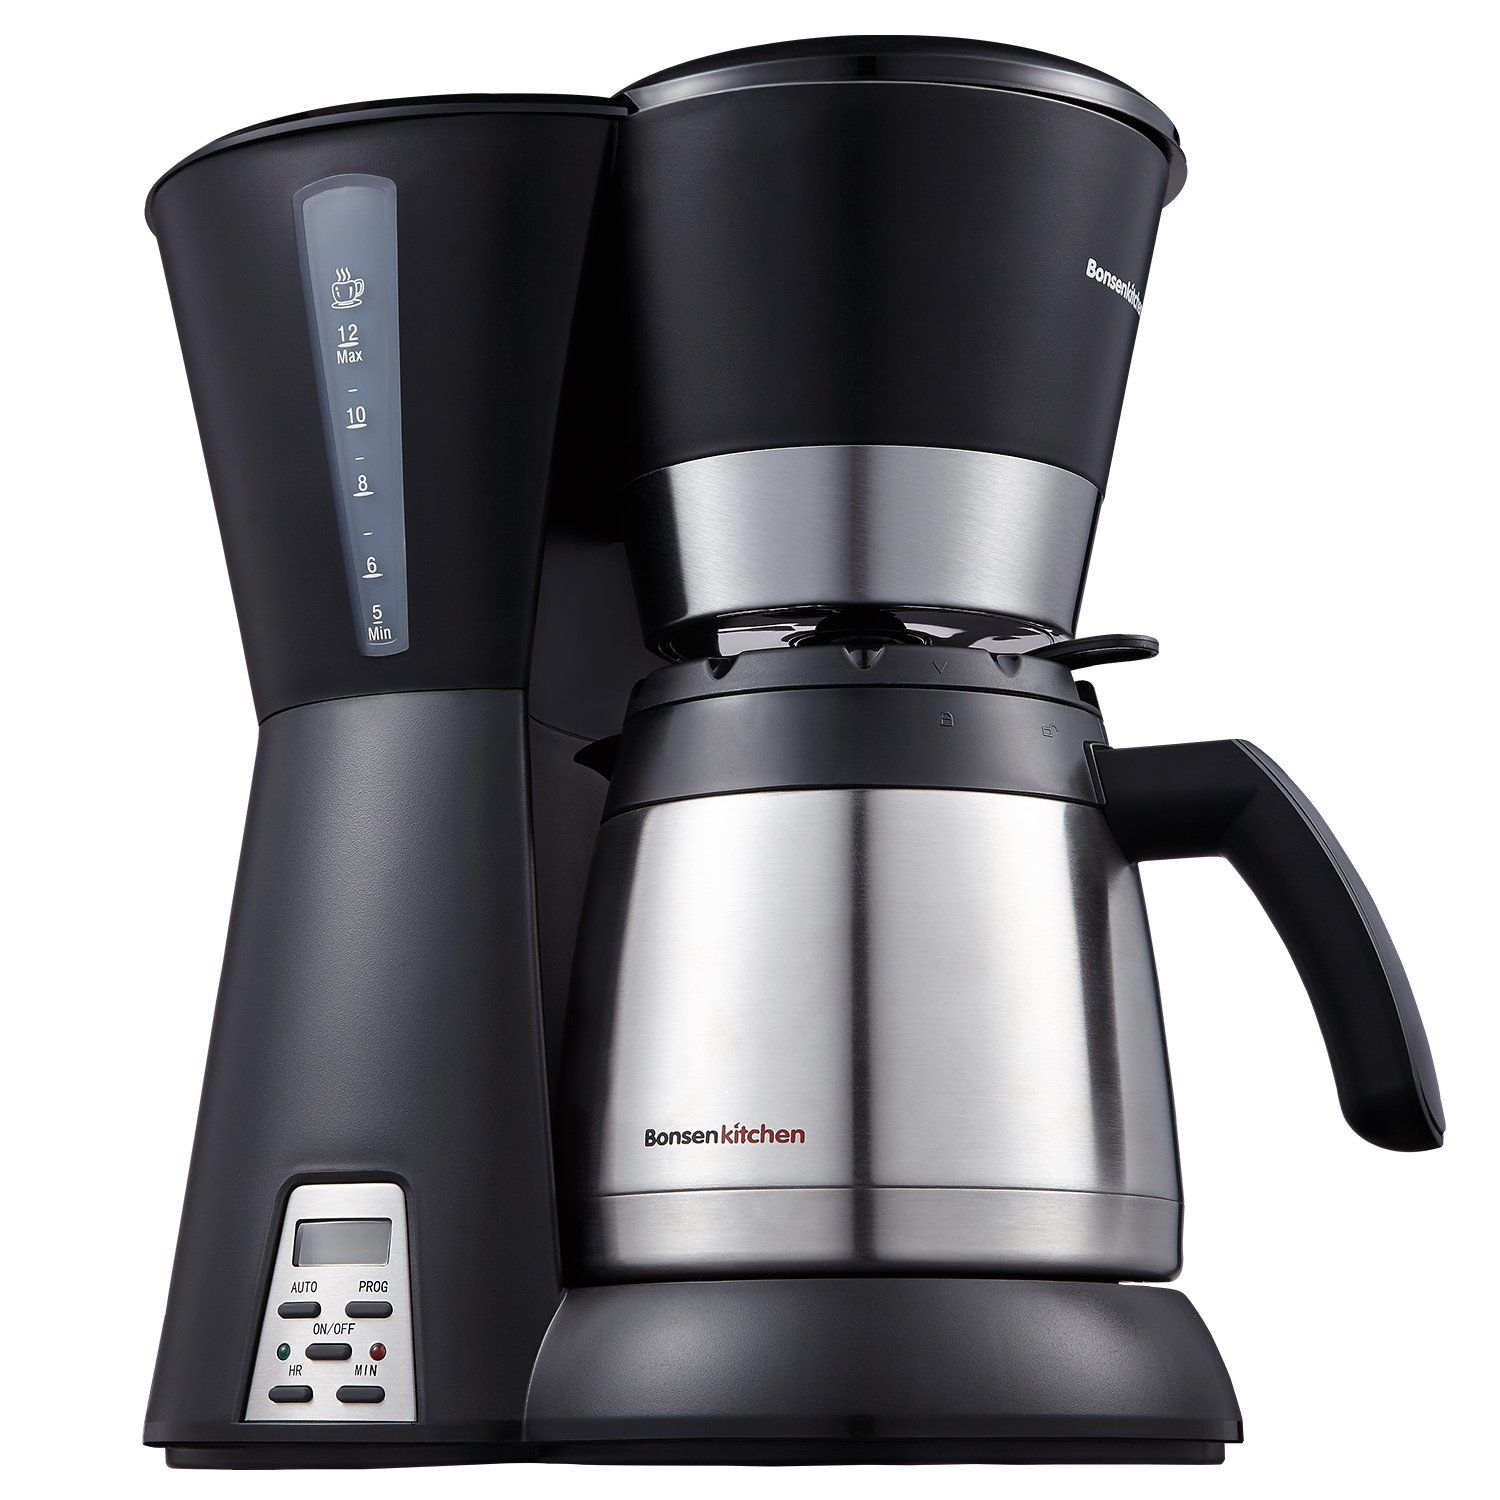 Bonsenkitchen cup thermal programmable coffee maker with permanent